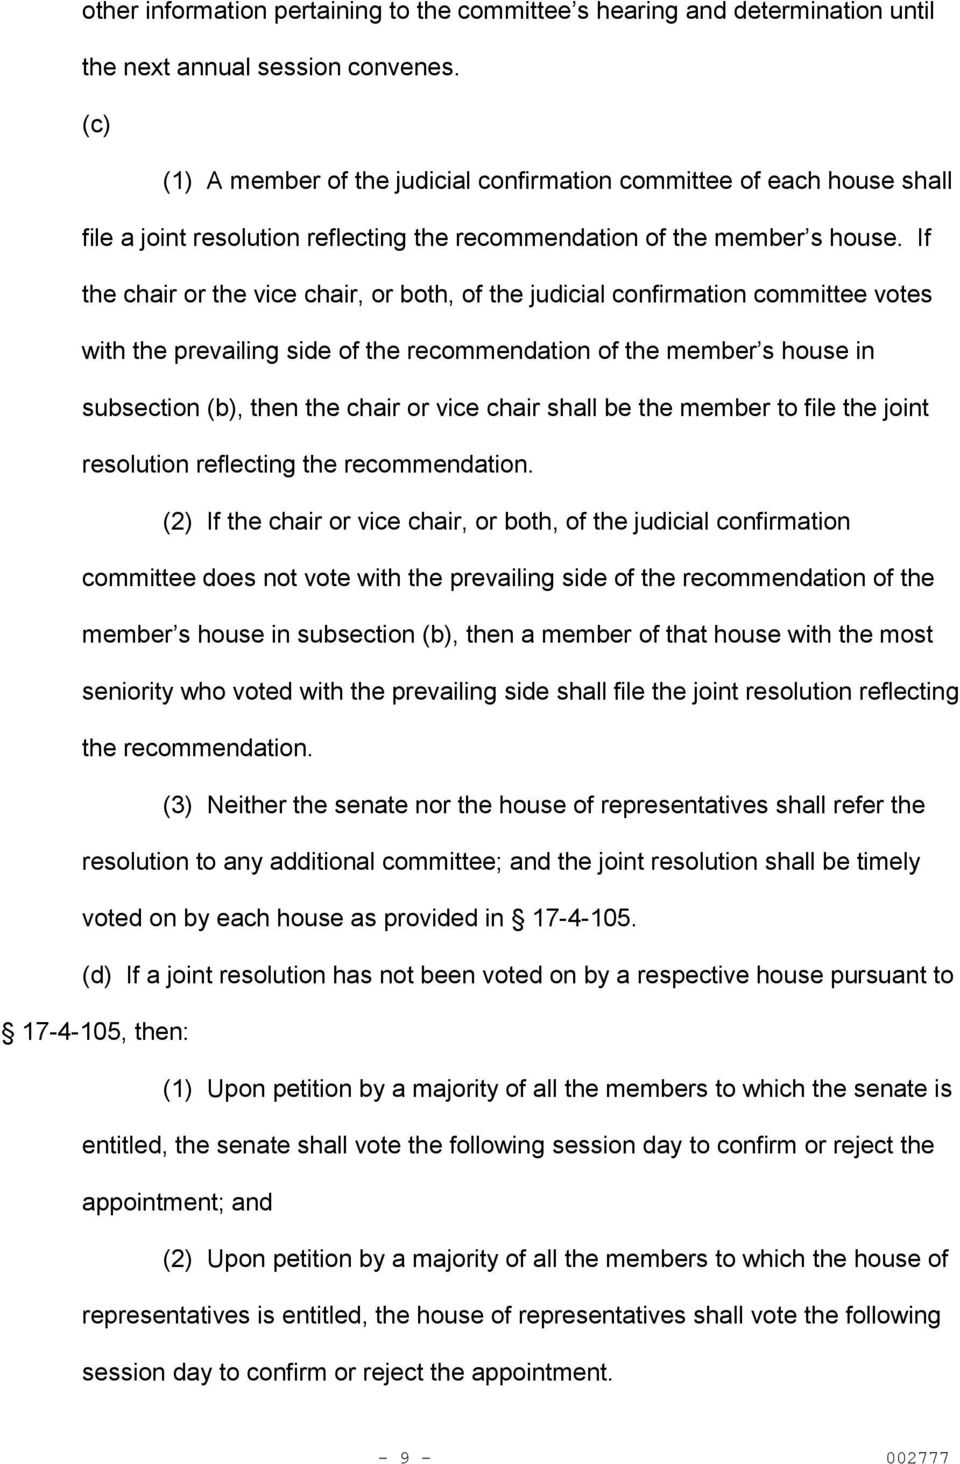 If the chair or the vice chair, or both, of the judicial confirmation committee votes with the prevailing side of the recommendation of the member s house in subsection (b), then the chair or vice